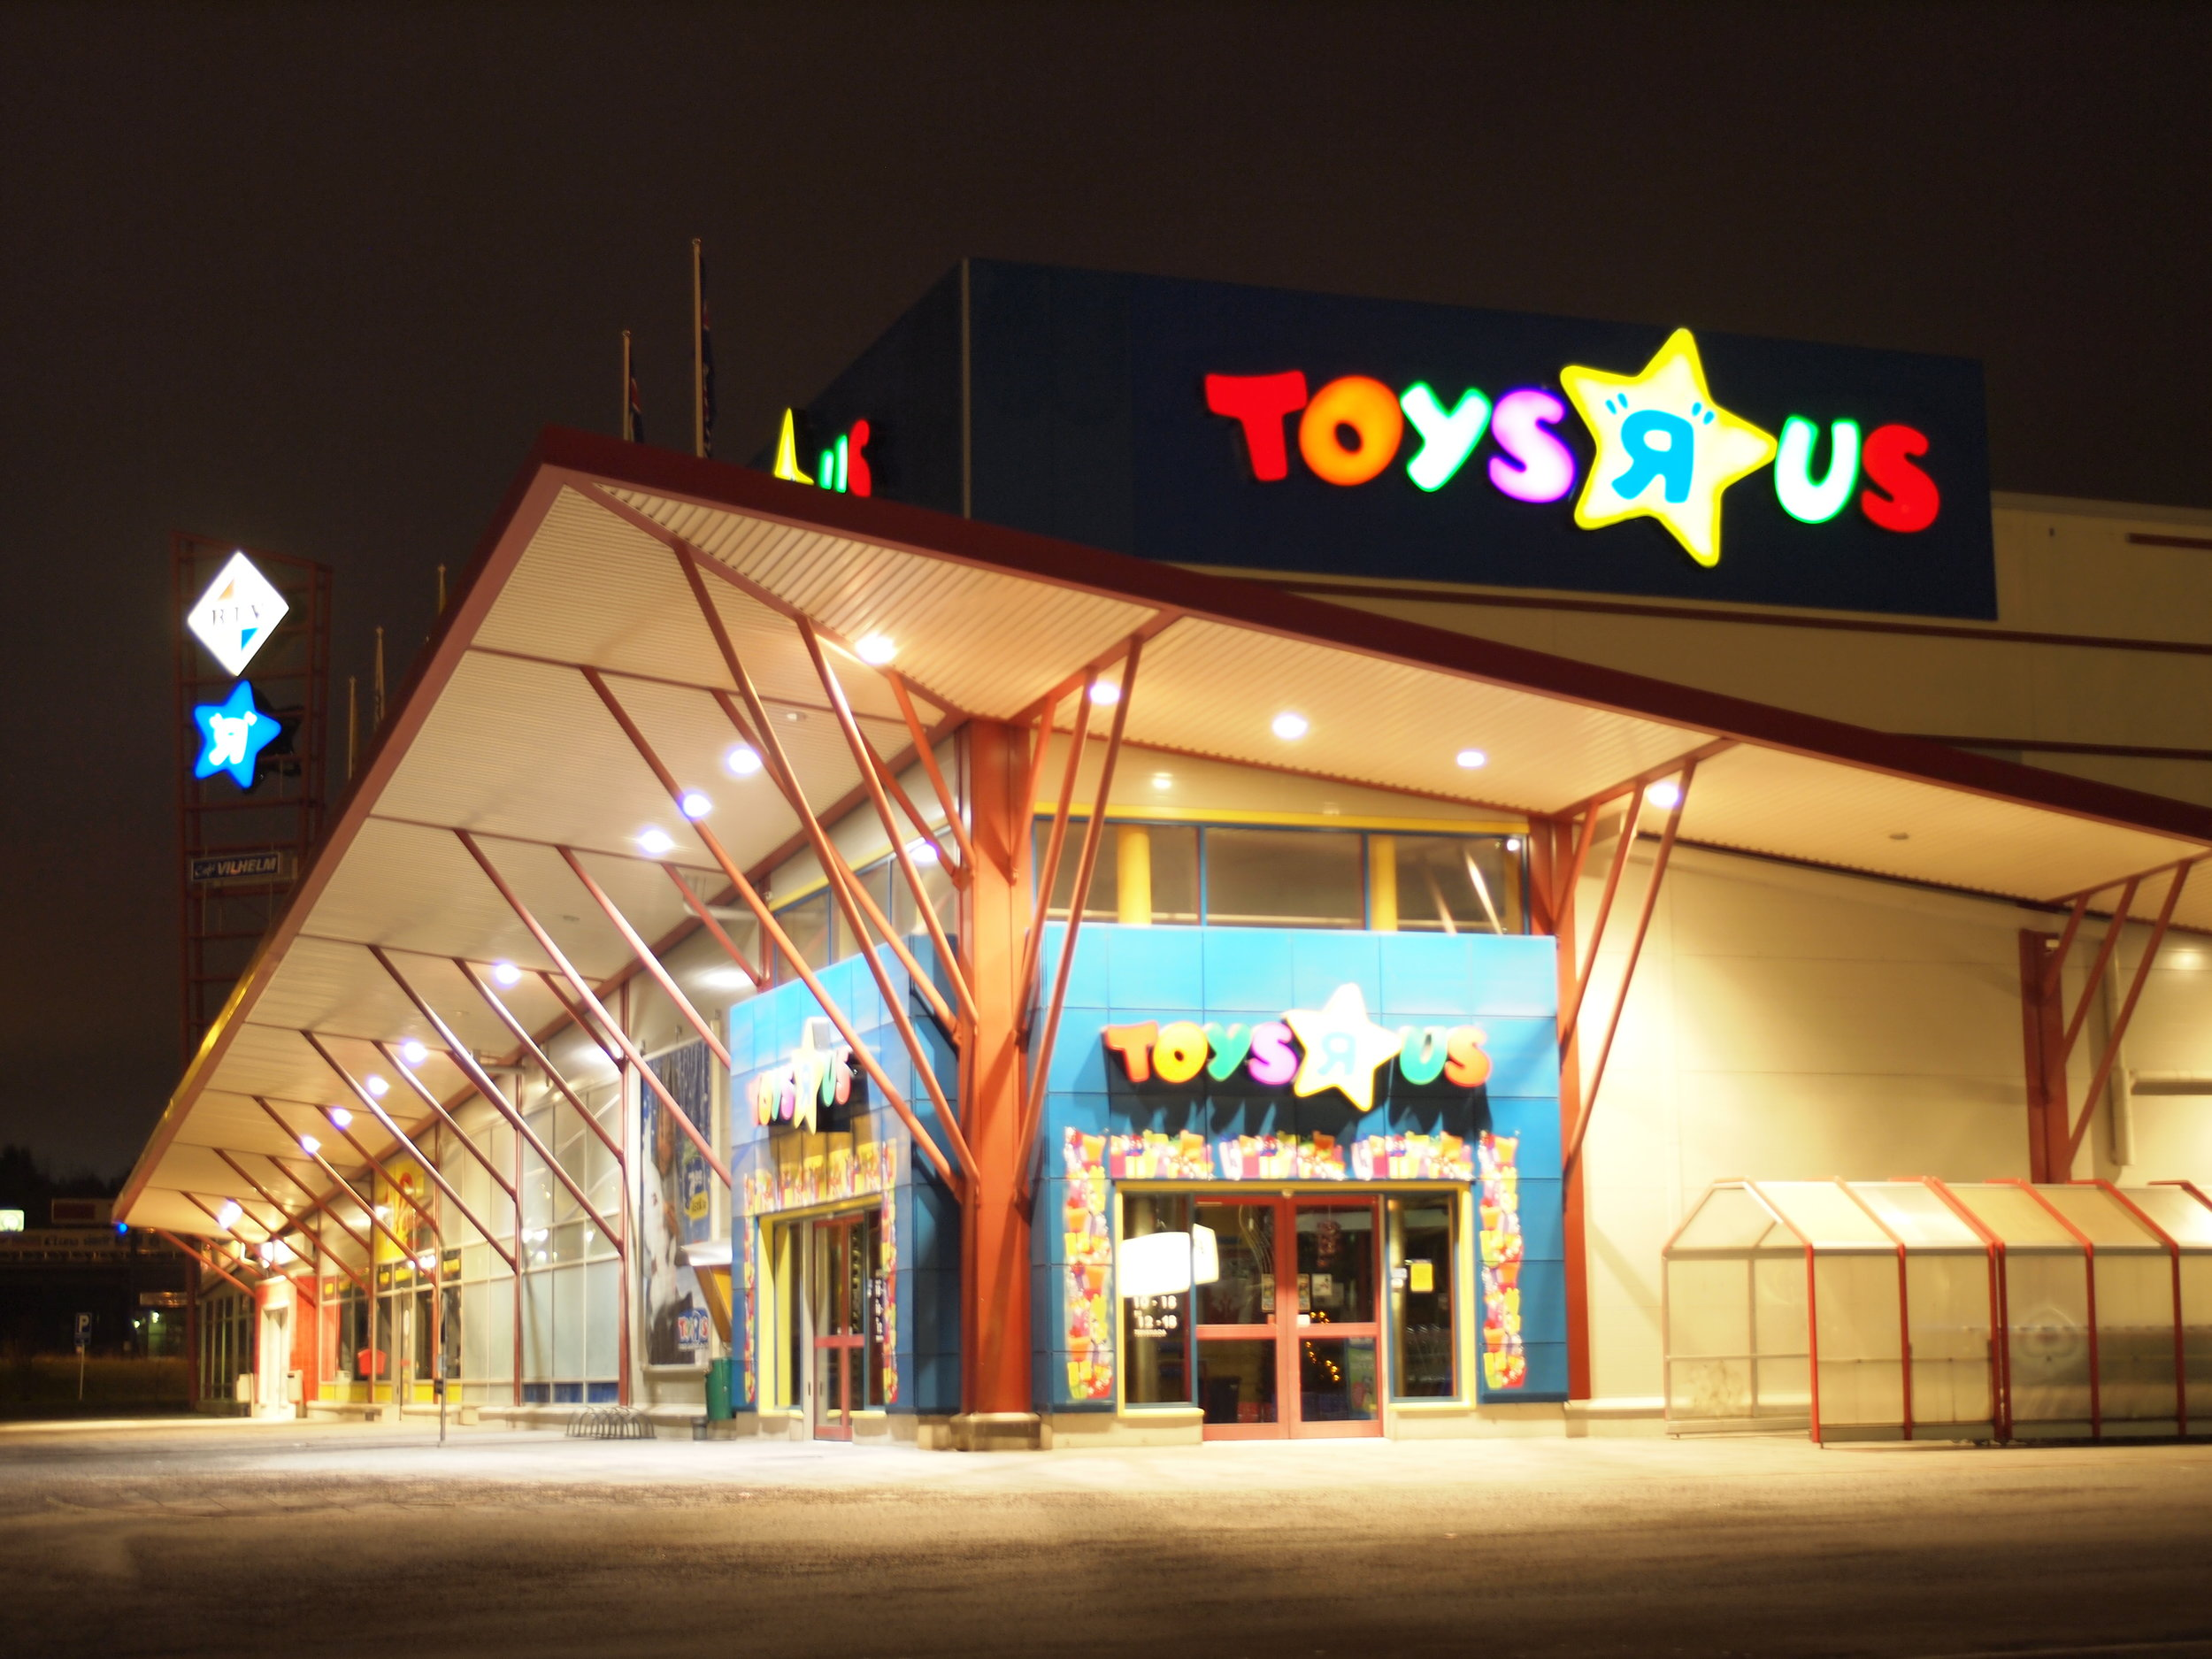 Toys R Us has closed its doors. Online shopping will never be anywhere close to this experience.